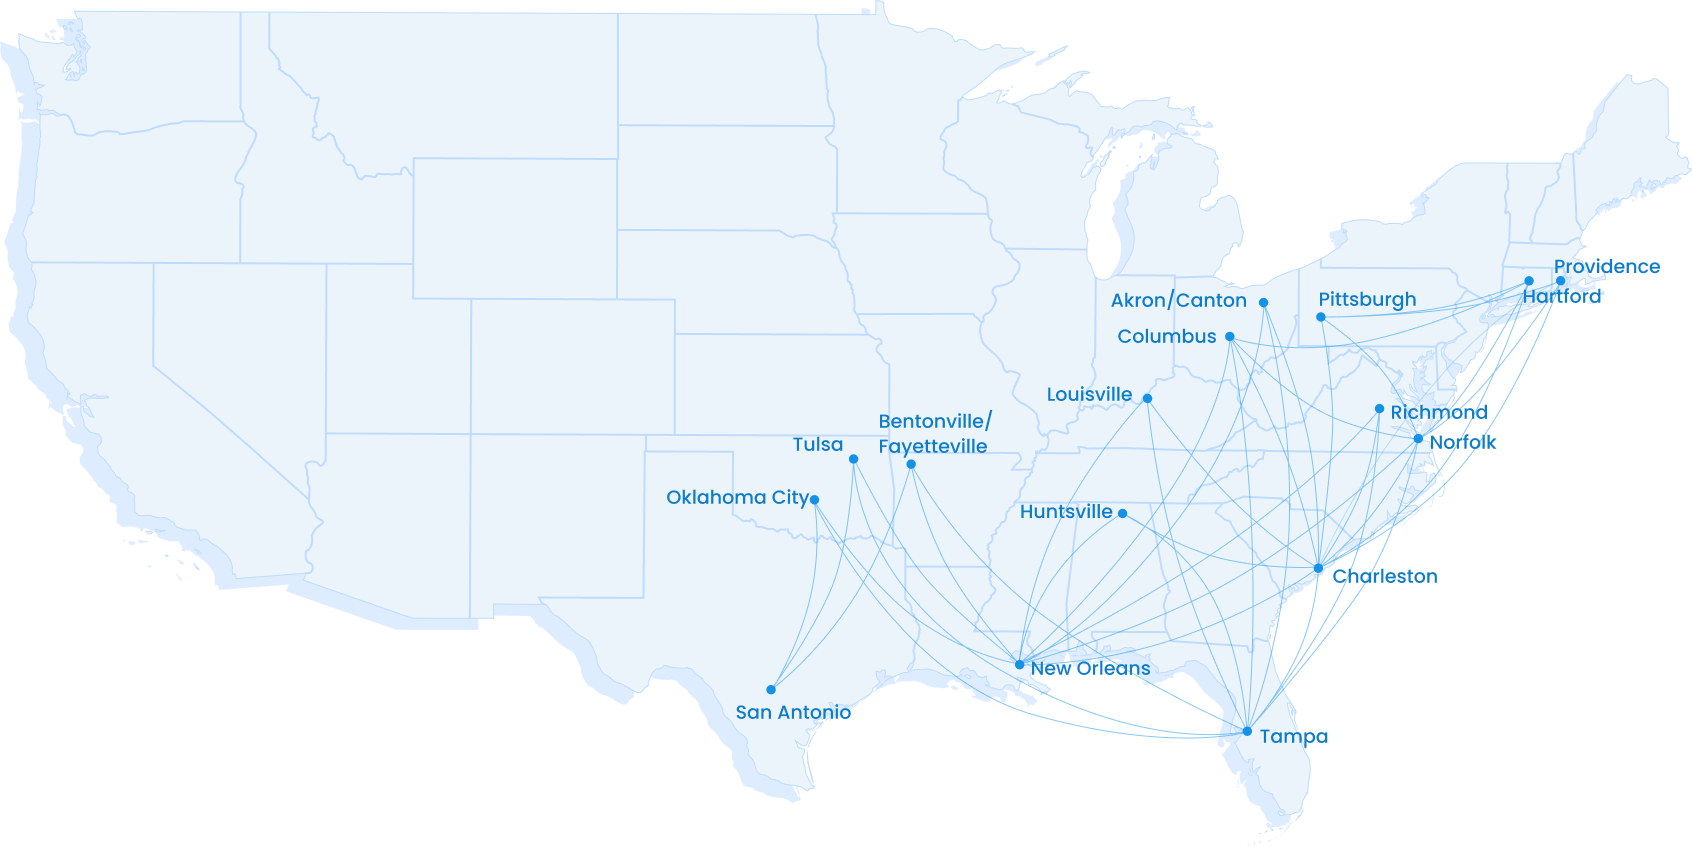 (Image courtesy Breeze Airways) Utah-based Breeze Airways unveiled its travel network and will begin taking its first commercial passengers this month. While the airline's routes mostly serve the East and Southeast, its founder said he expects to add flights to Utah in the next year or two.